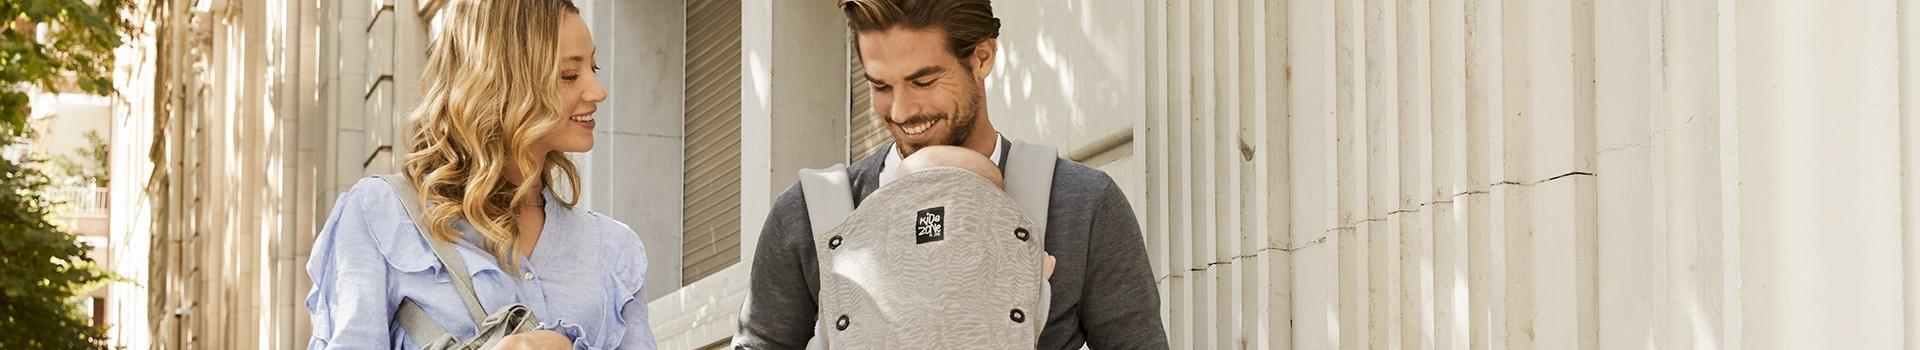 Baby carriers and slings - Outlet